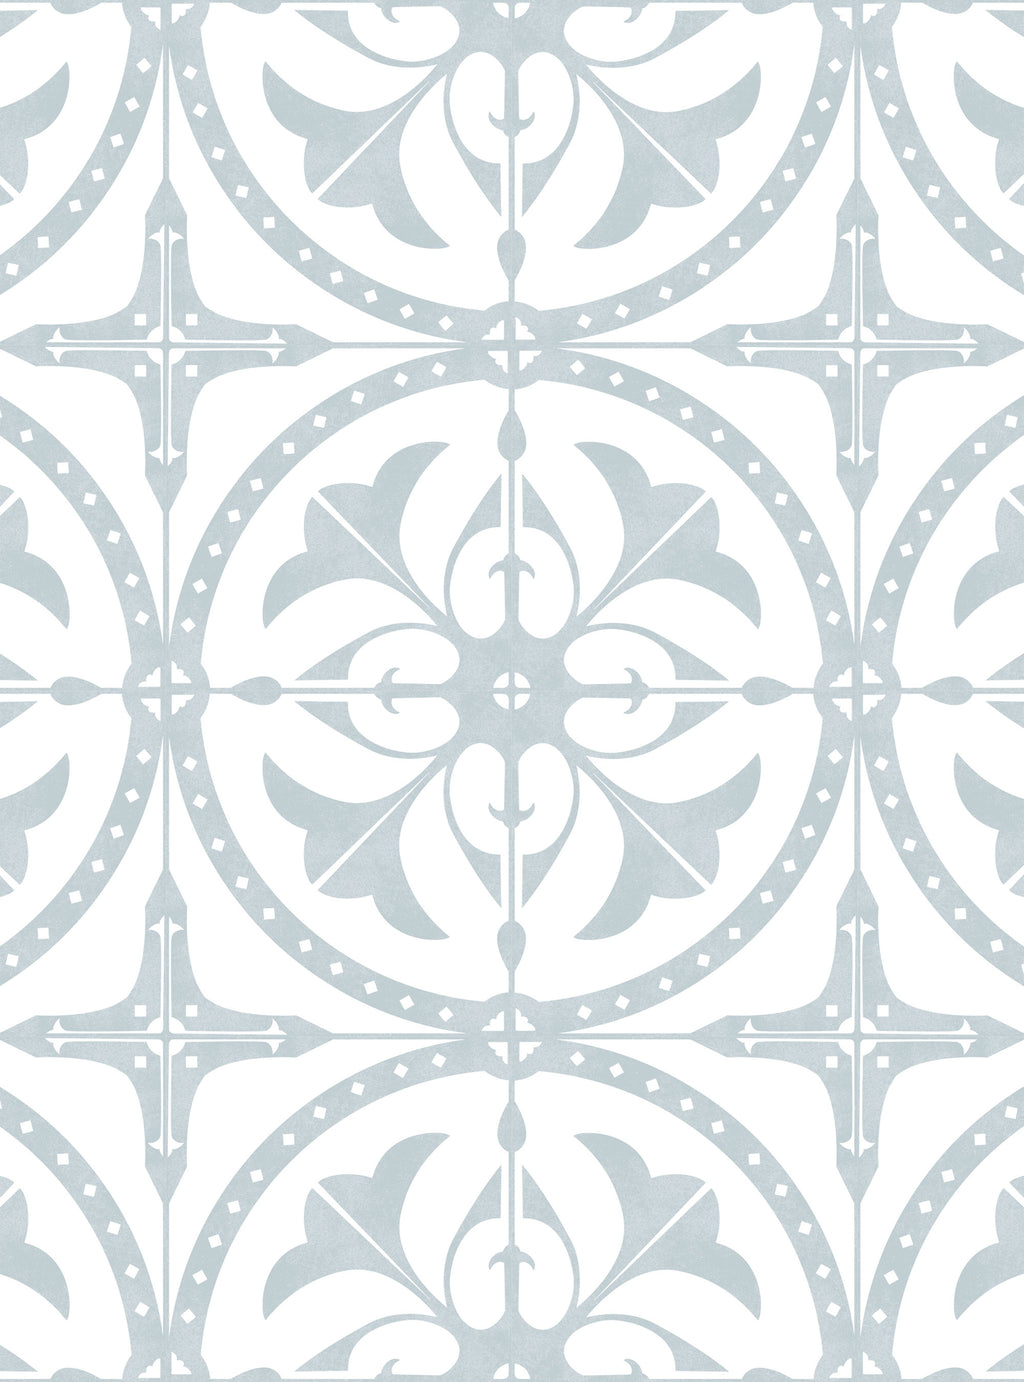 Round Moroccan Tile Wallpaper - Peel and Stick